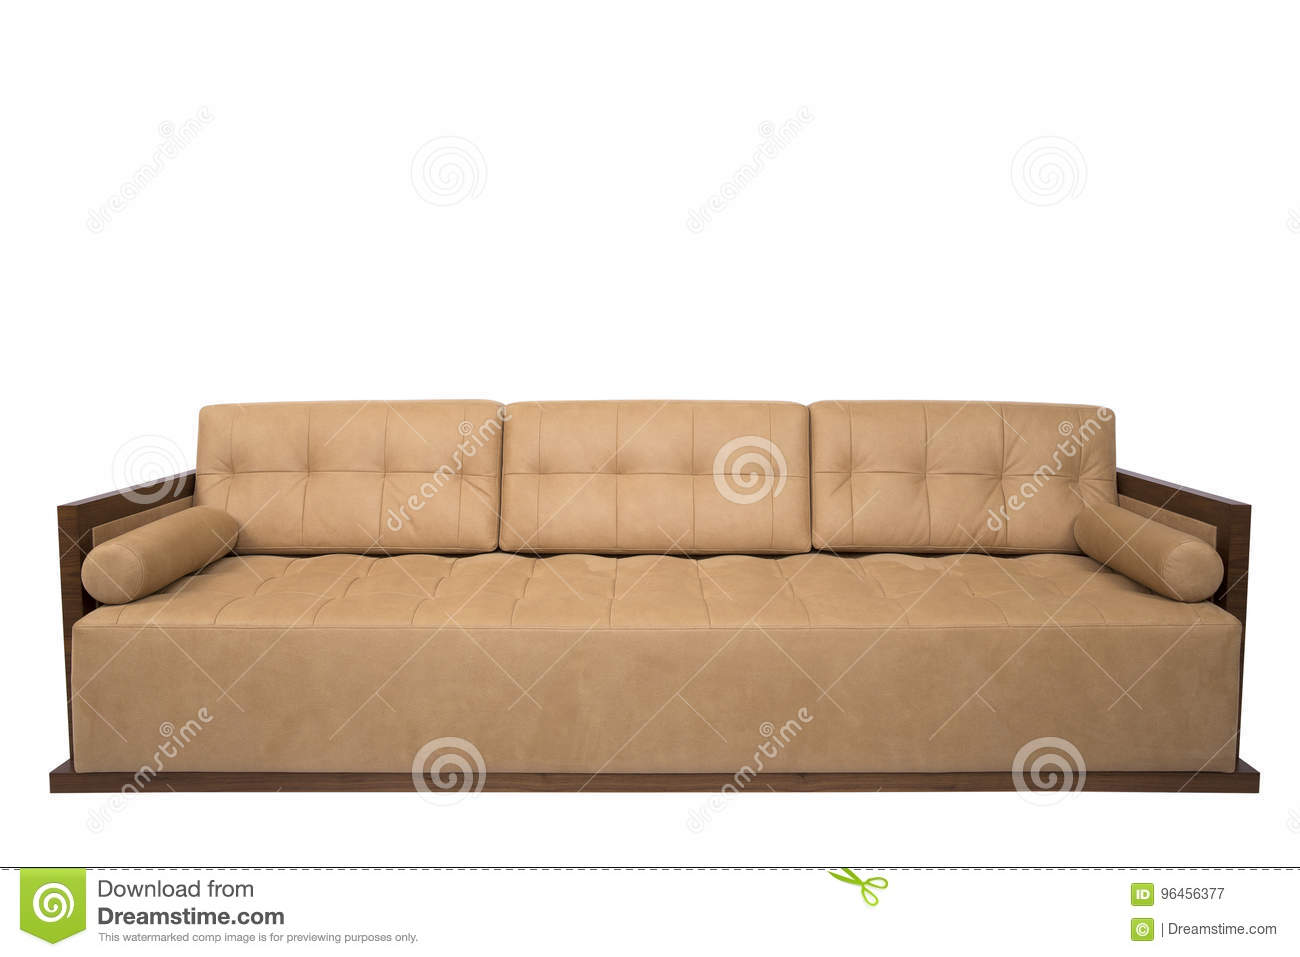 Sofa Stock Image Image Of Chester Comfort Classic 96456377